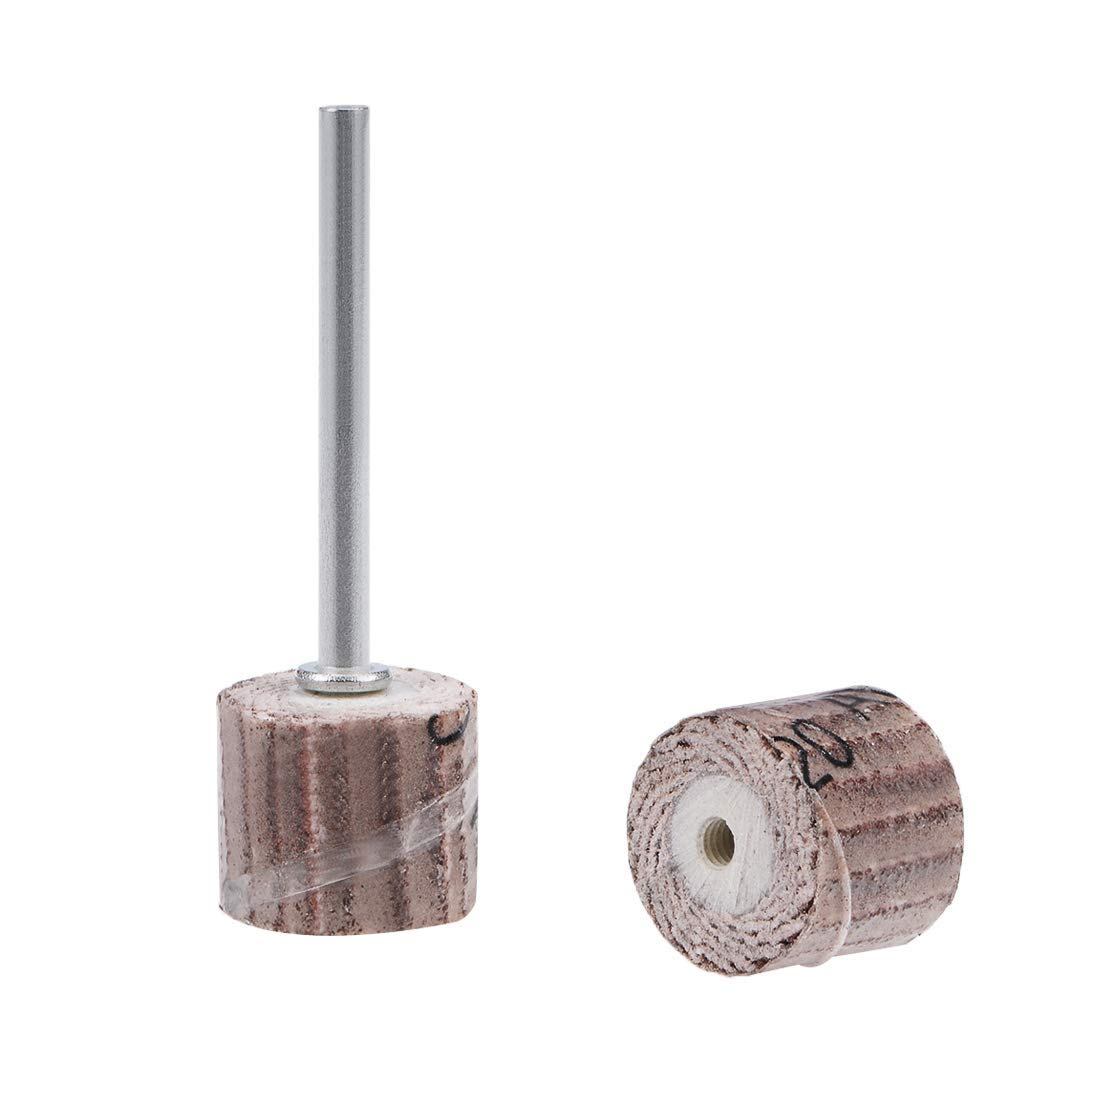 8 Pieces 12x12mm Flap Wheel 120 Grains Abrasive Abrasive Head with 1//8 inch Shank for Rotary Tool